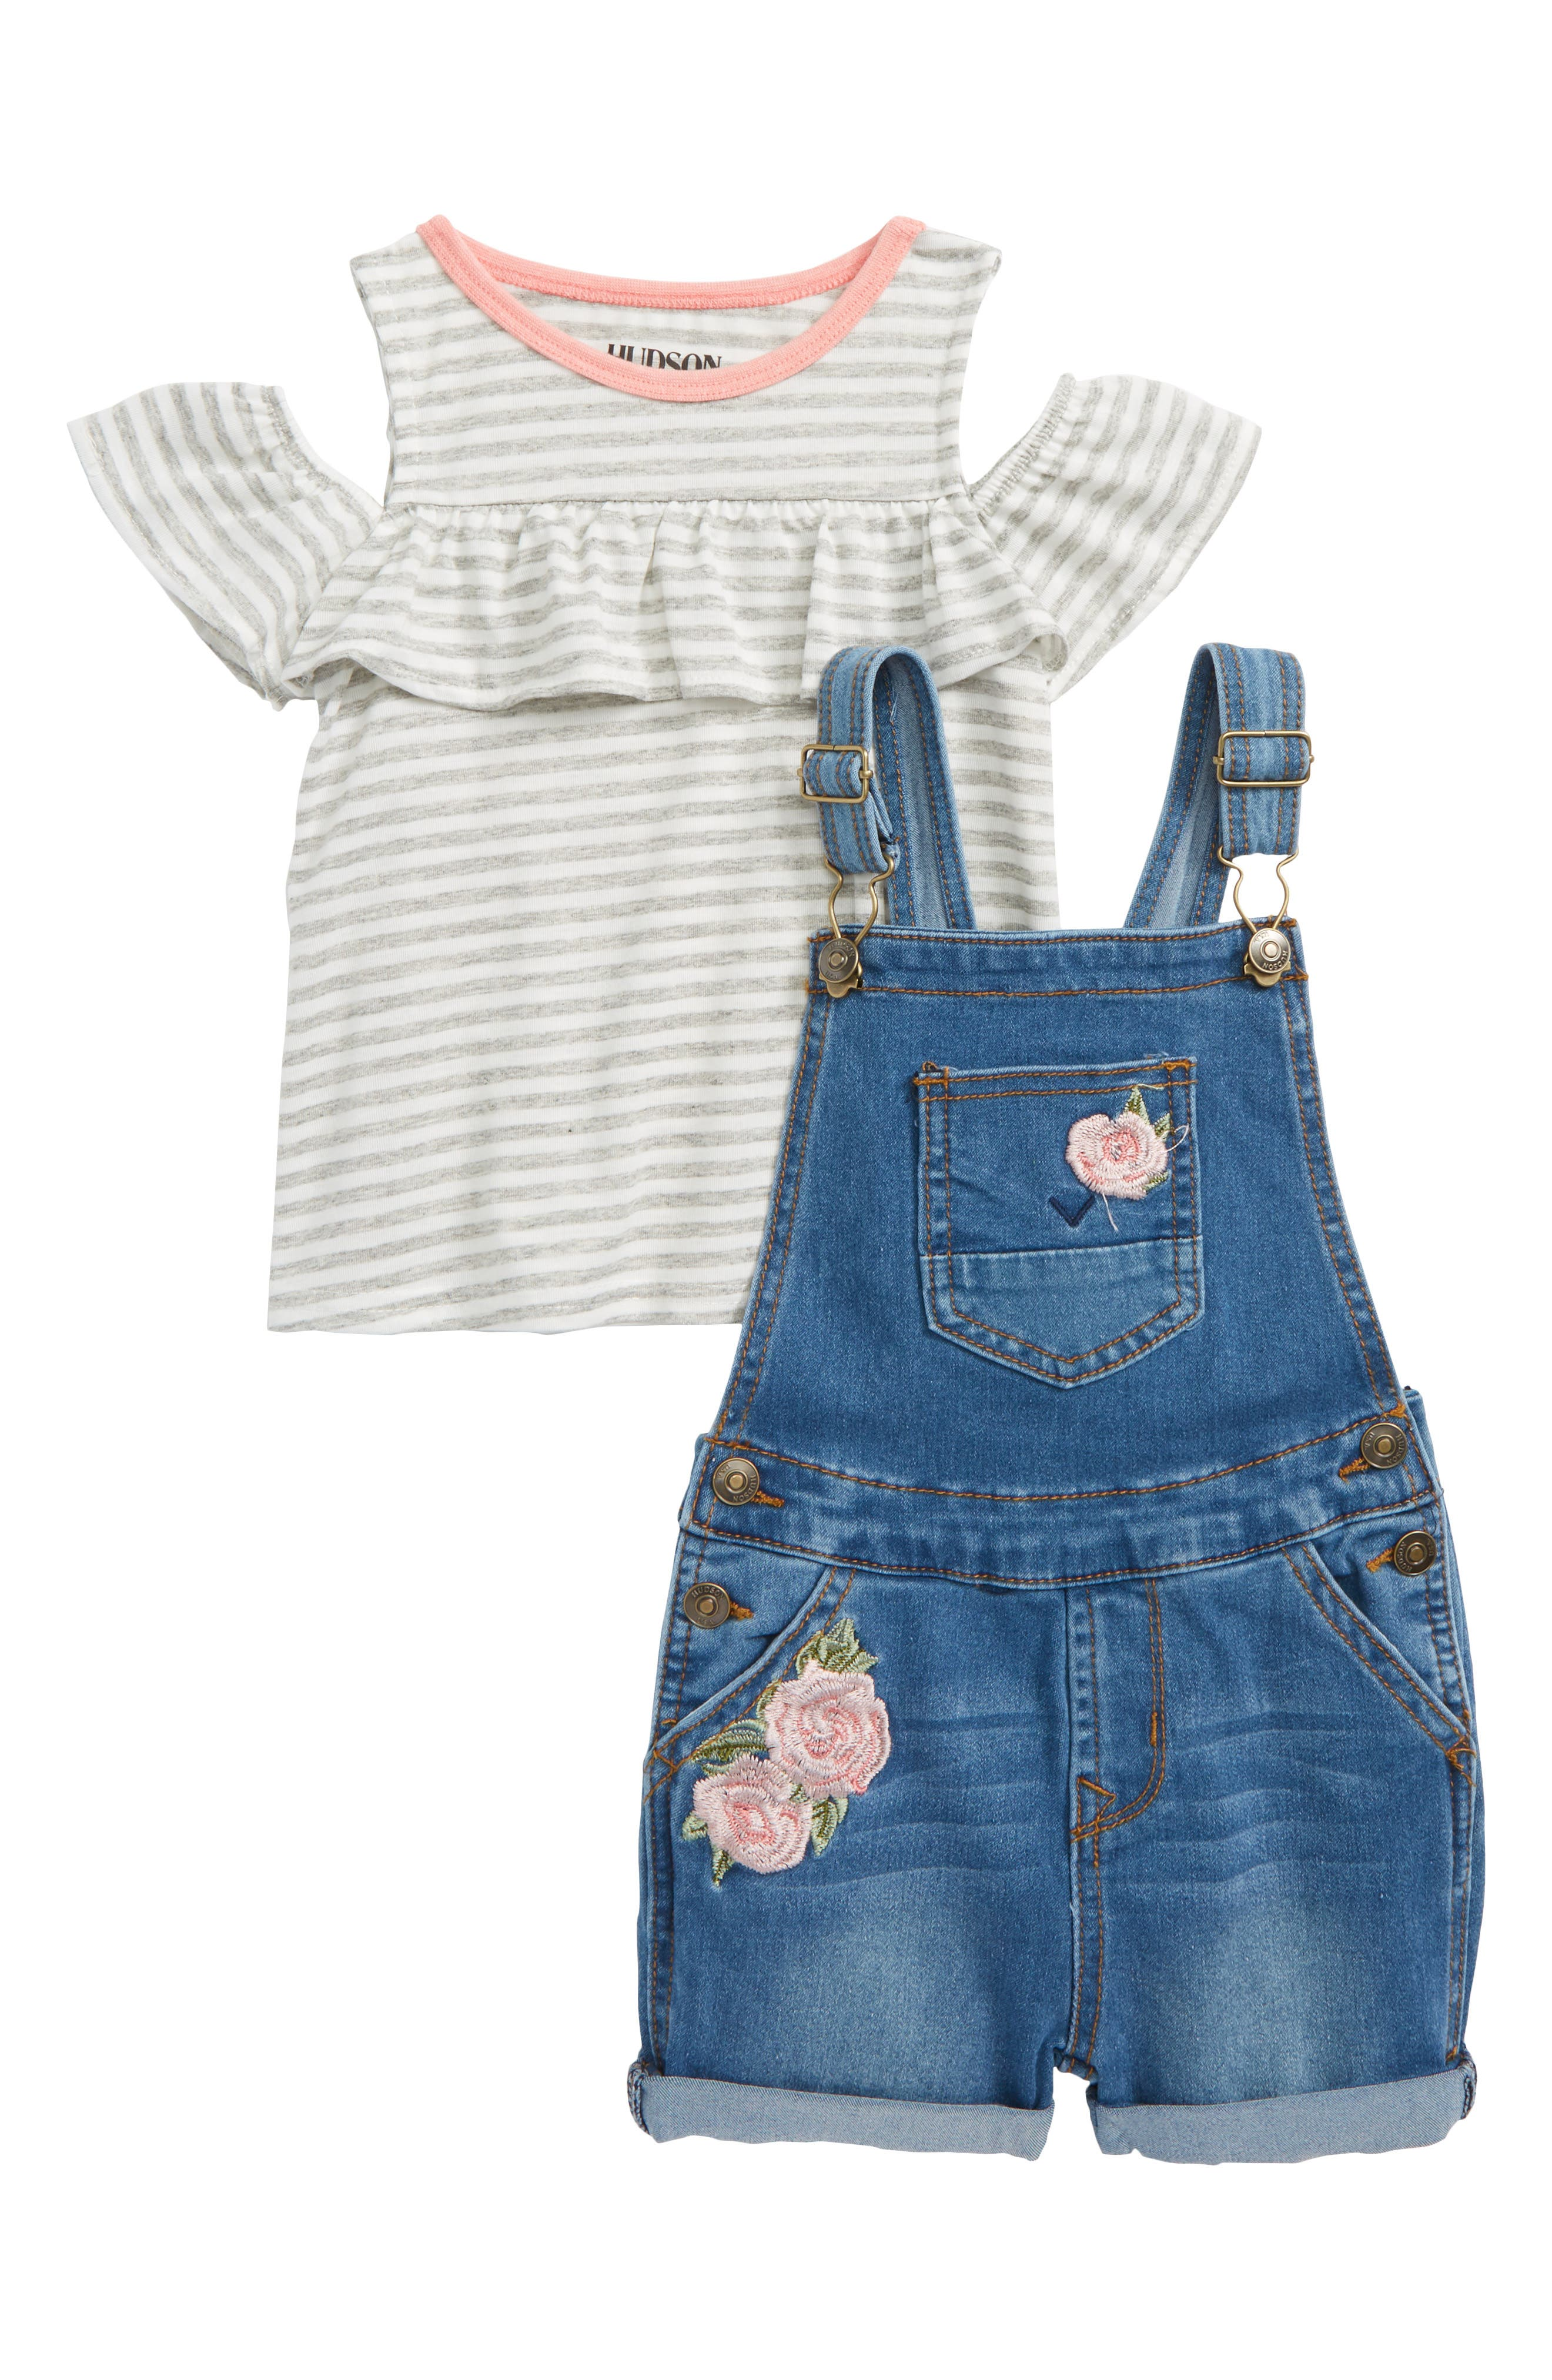 Overalls & Tee Set,                         Main,                         color, Whatever Wash